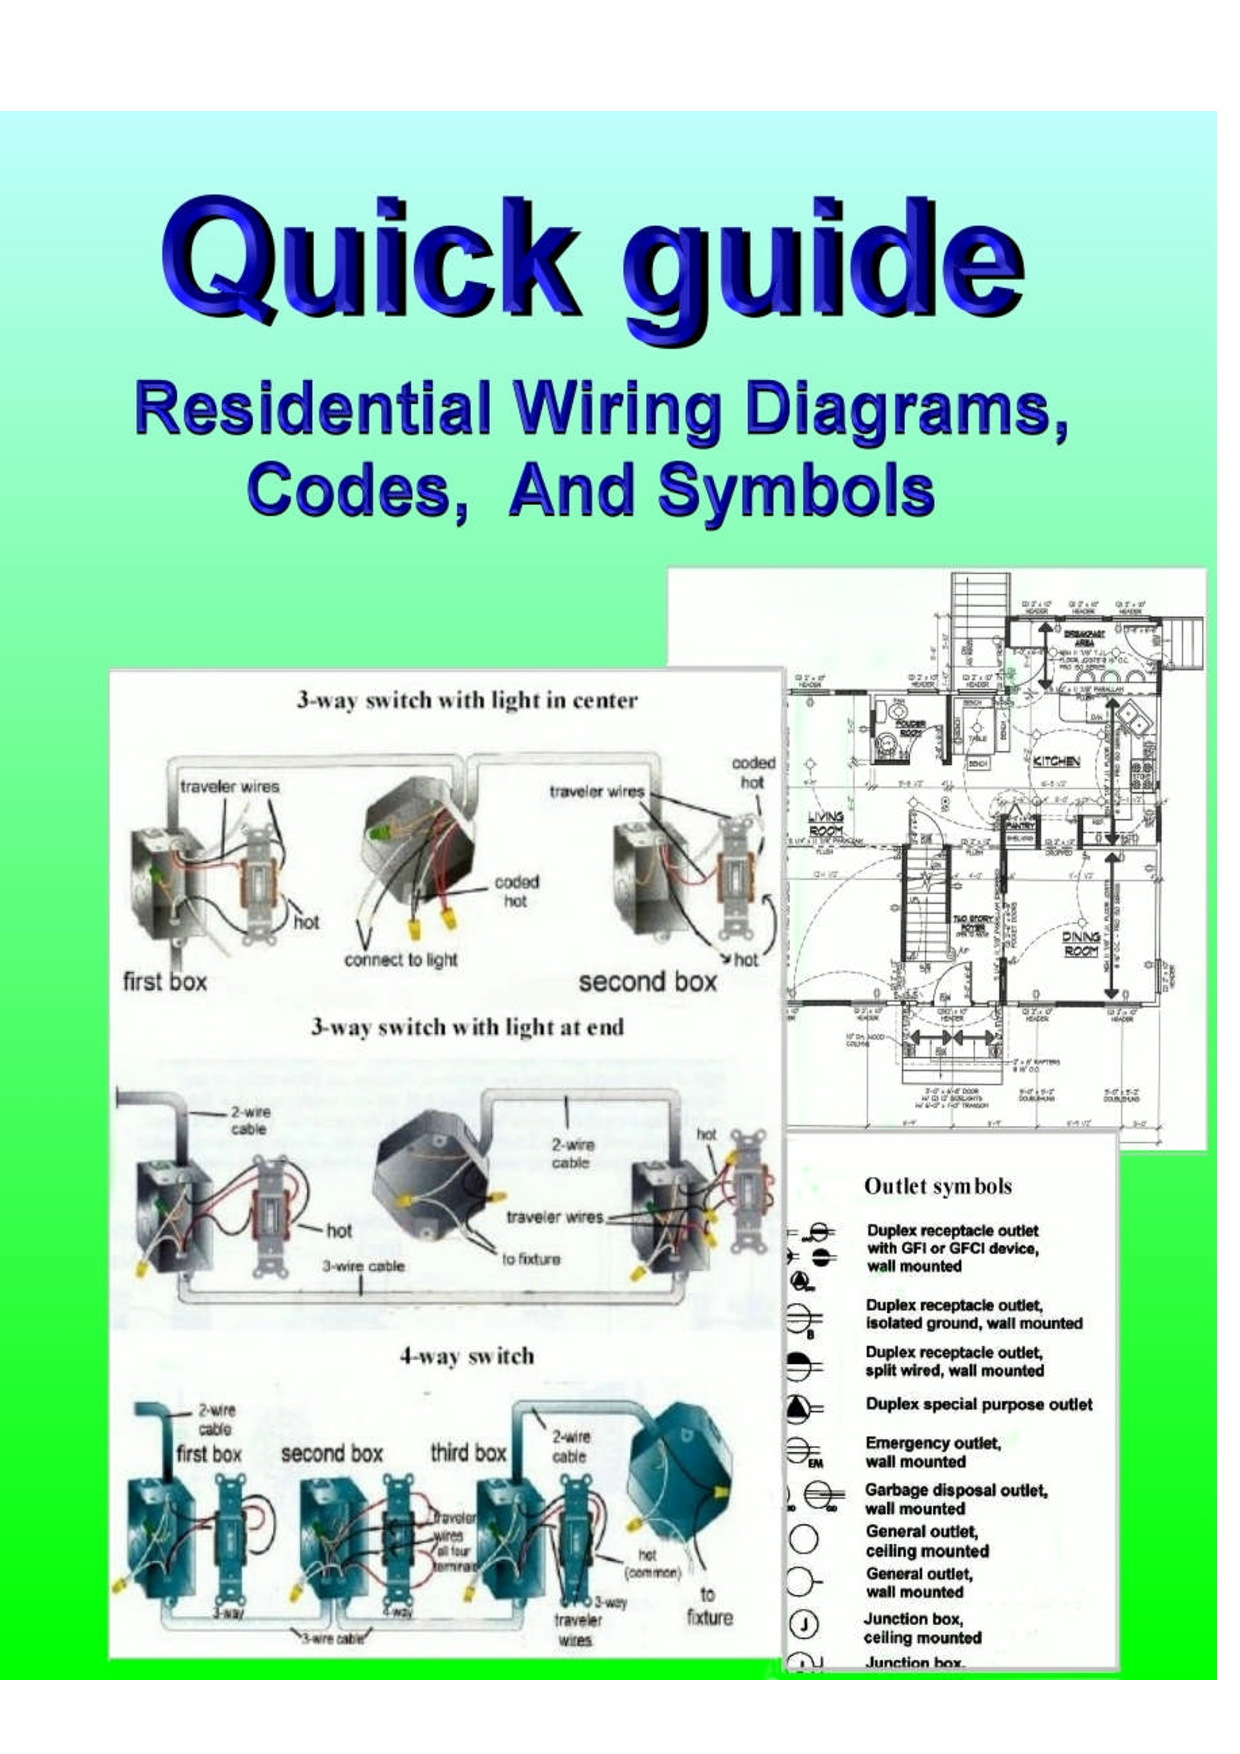 c3f403d8f667f3f3dbd14336f6c29d3e home electrical wiring diagrams visit the following link for Basic Electrical Wiring Diagrams at n-0.co